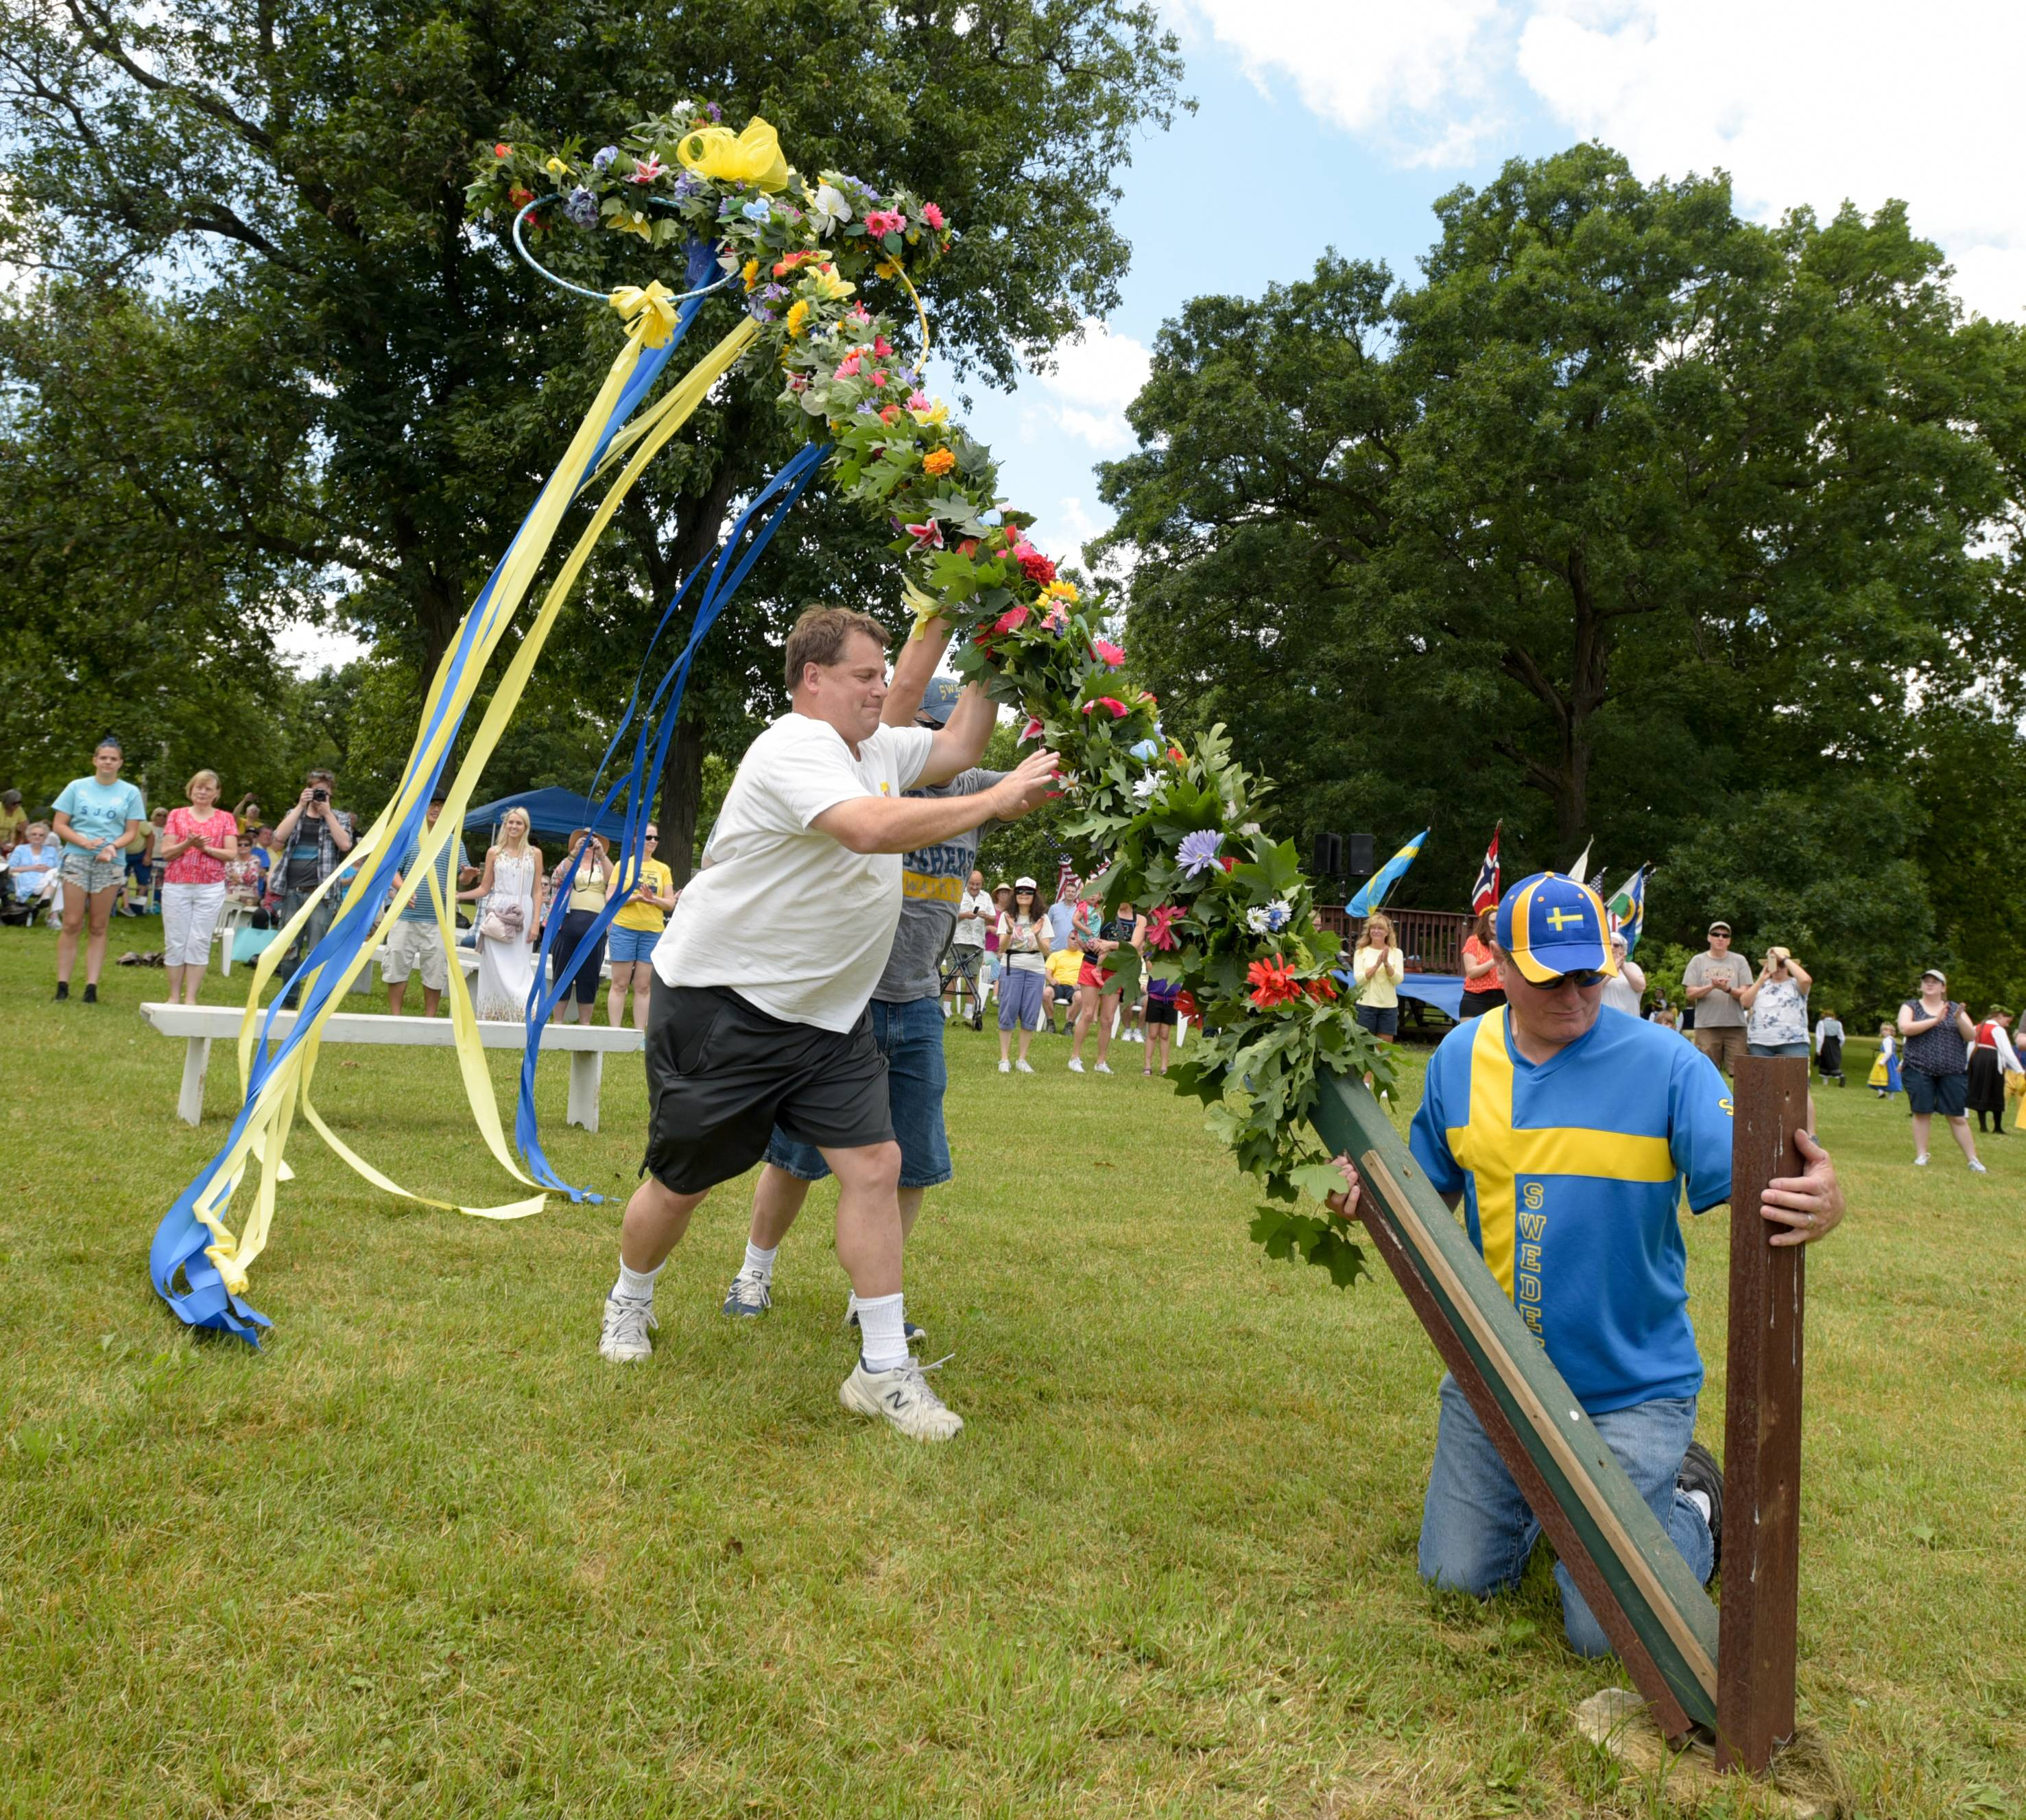 The Maypole is raised Sunday during the 107th Swedish Day Midsummer Festival at Good Templar Park in Geneva.